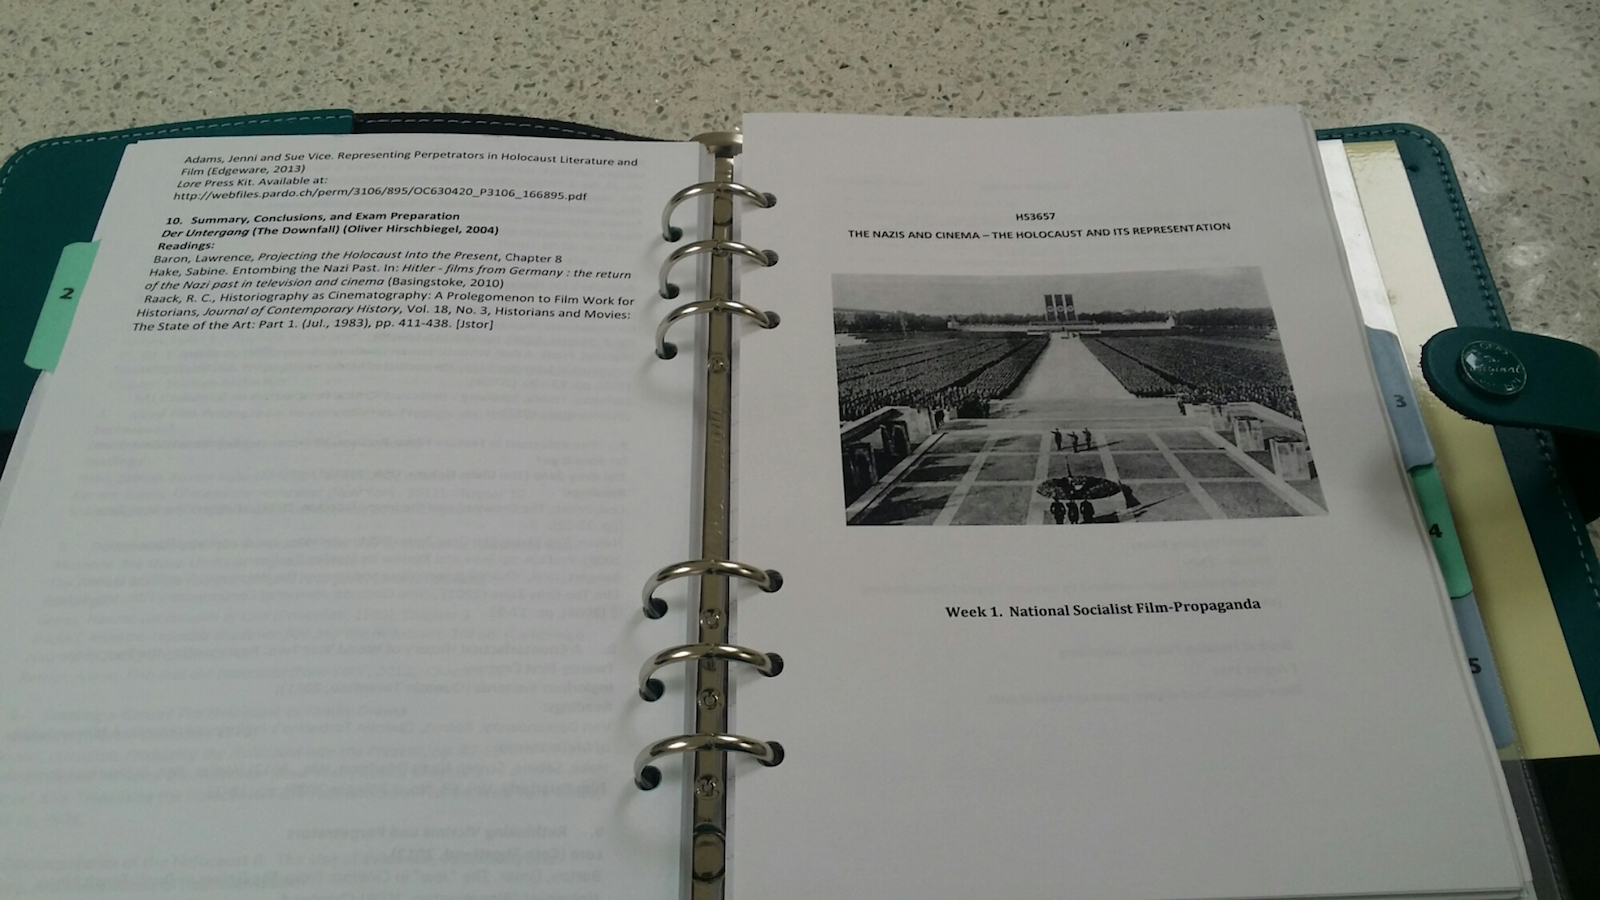 philofaxy all stars guest post using a filofax for your i also have my dissertation work in here i have my essay exploring my topic and some meeting reports about my progress i also have draft copies of